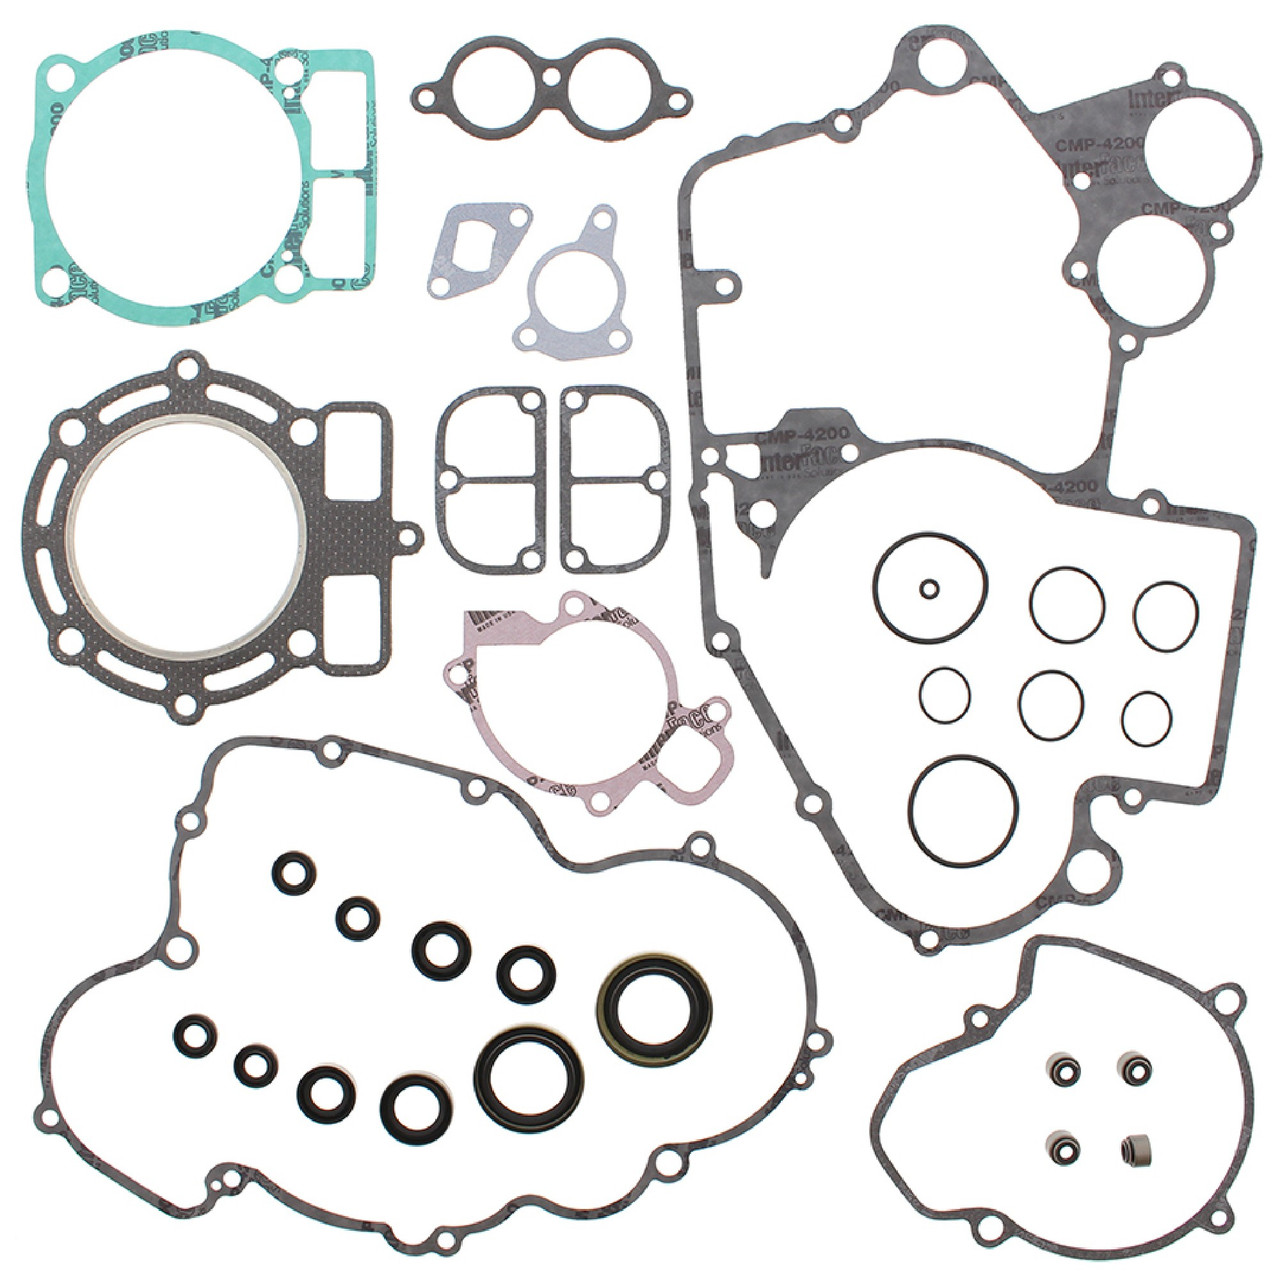 Winderosa Gasket Kit With Oil Seals for KTM 400 EXC Racing 00 01 02